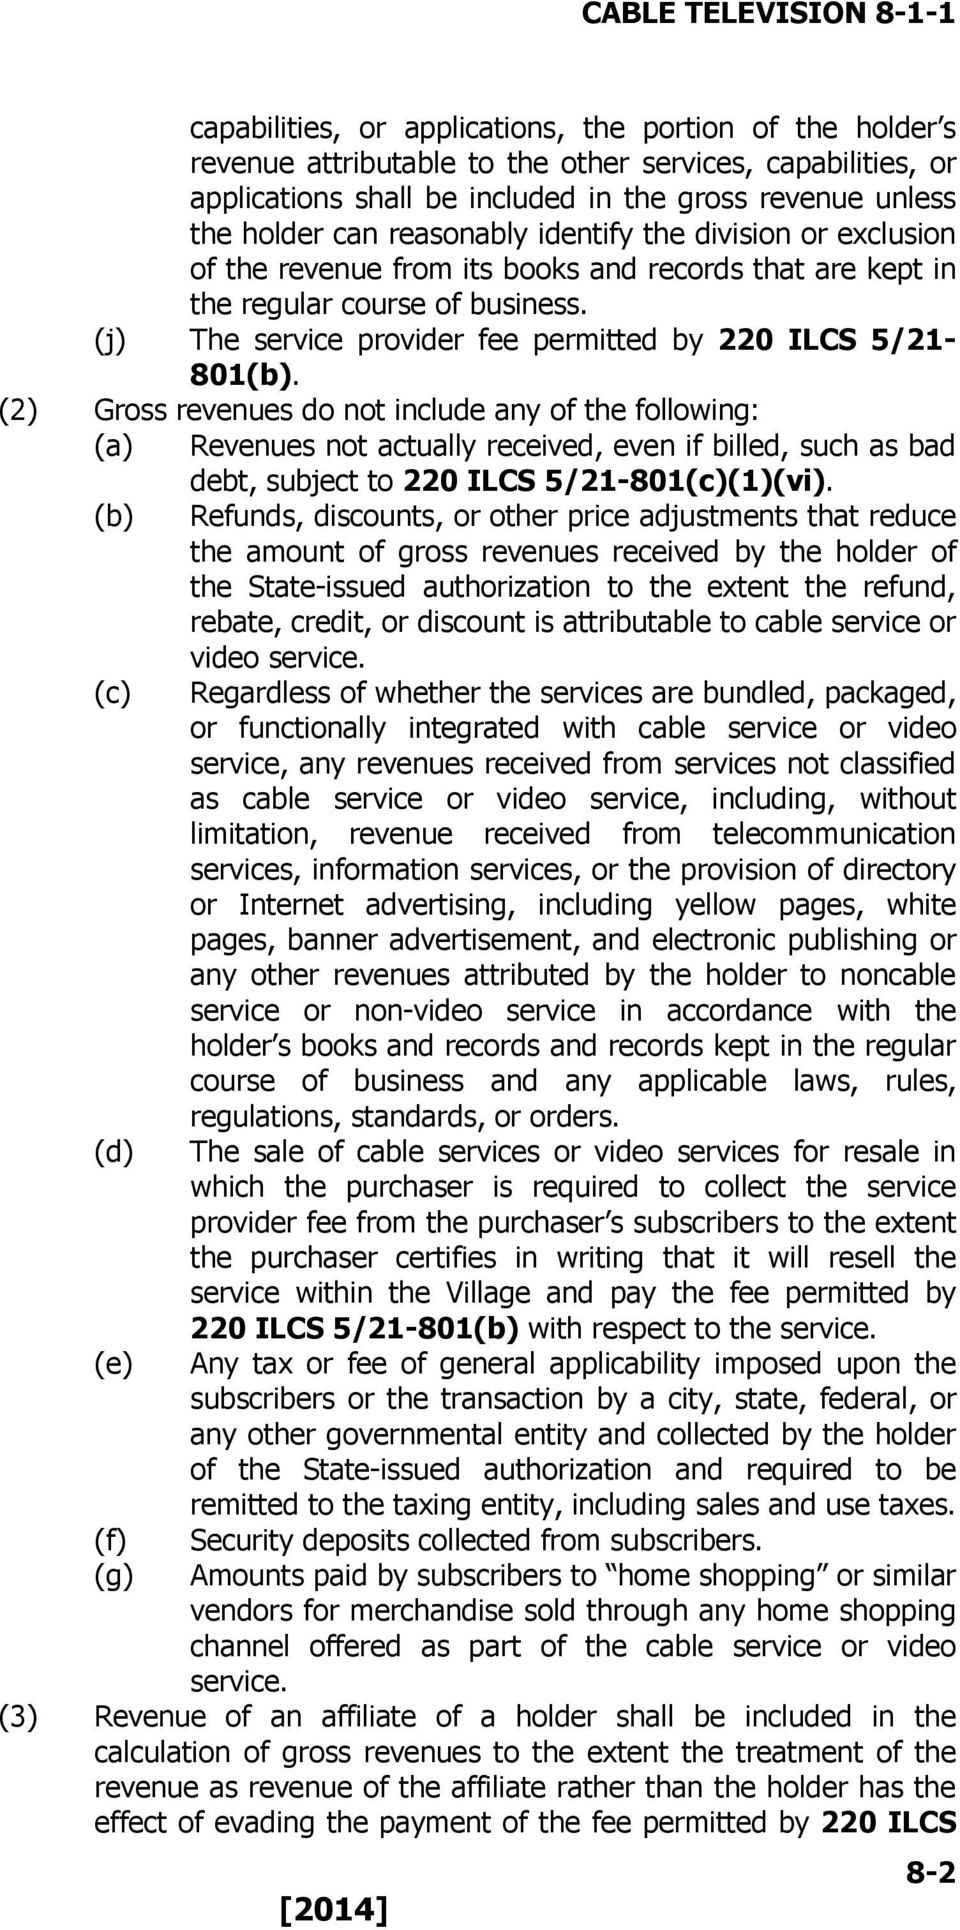 (j) The service provider fee permitted by 220 ILCS 5/21-801(b).